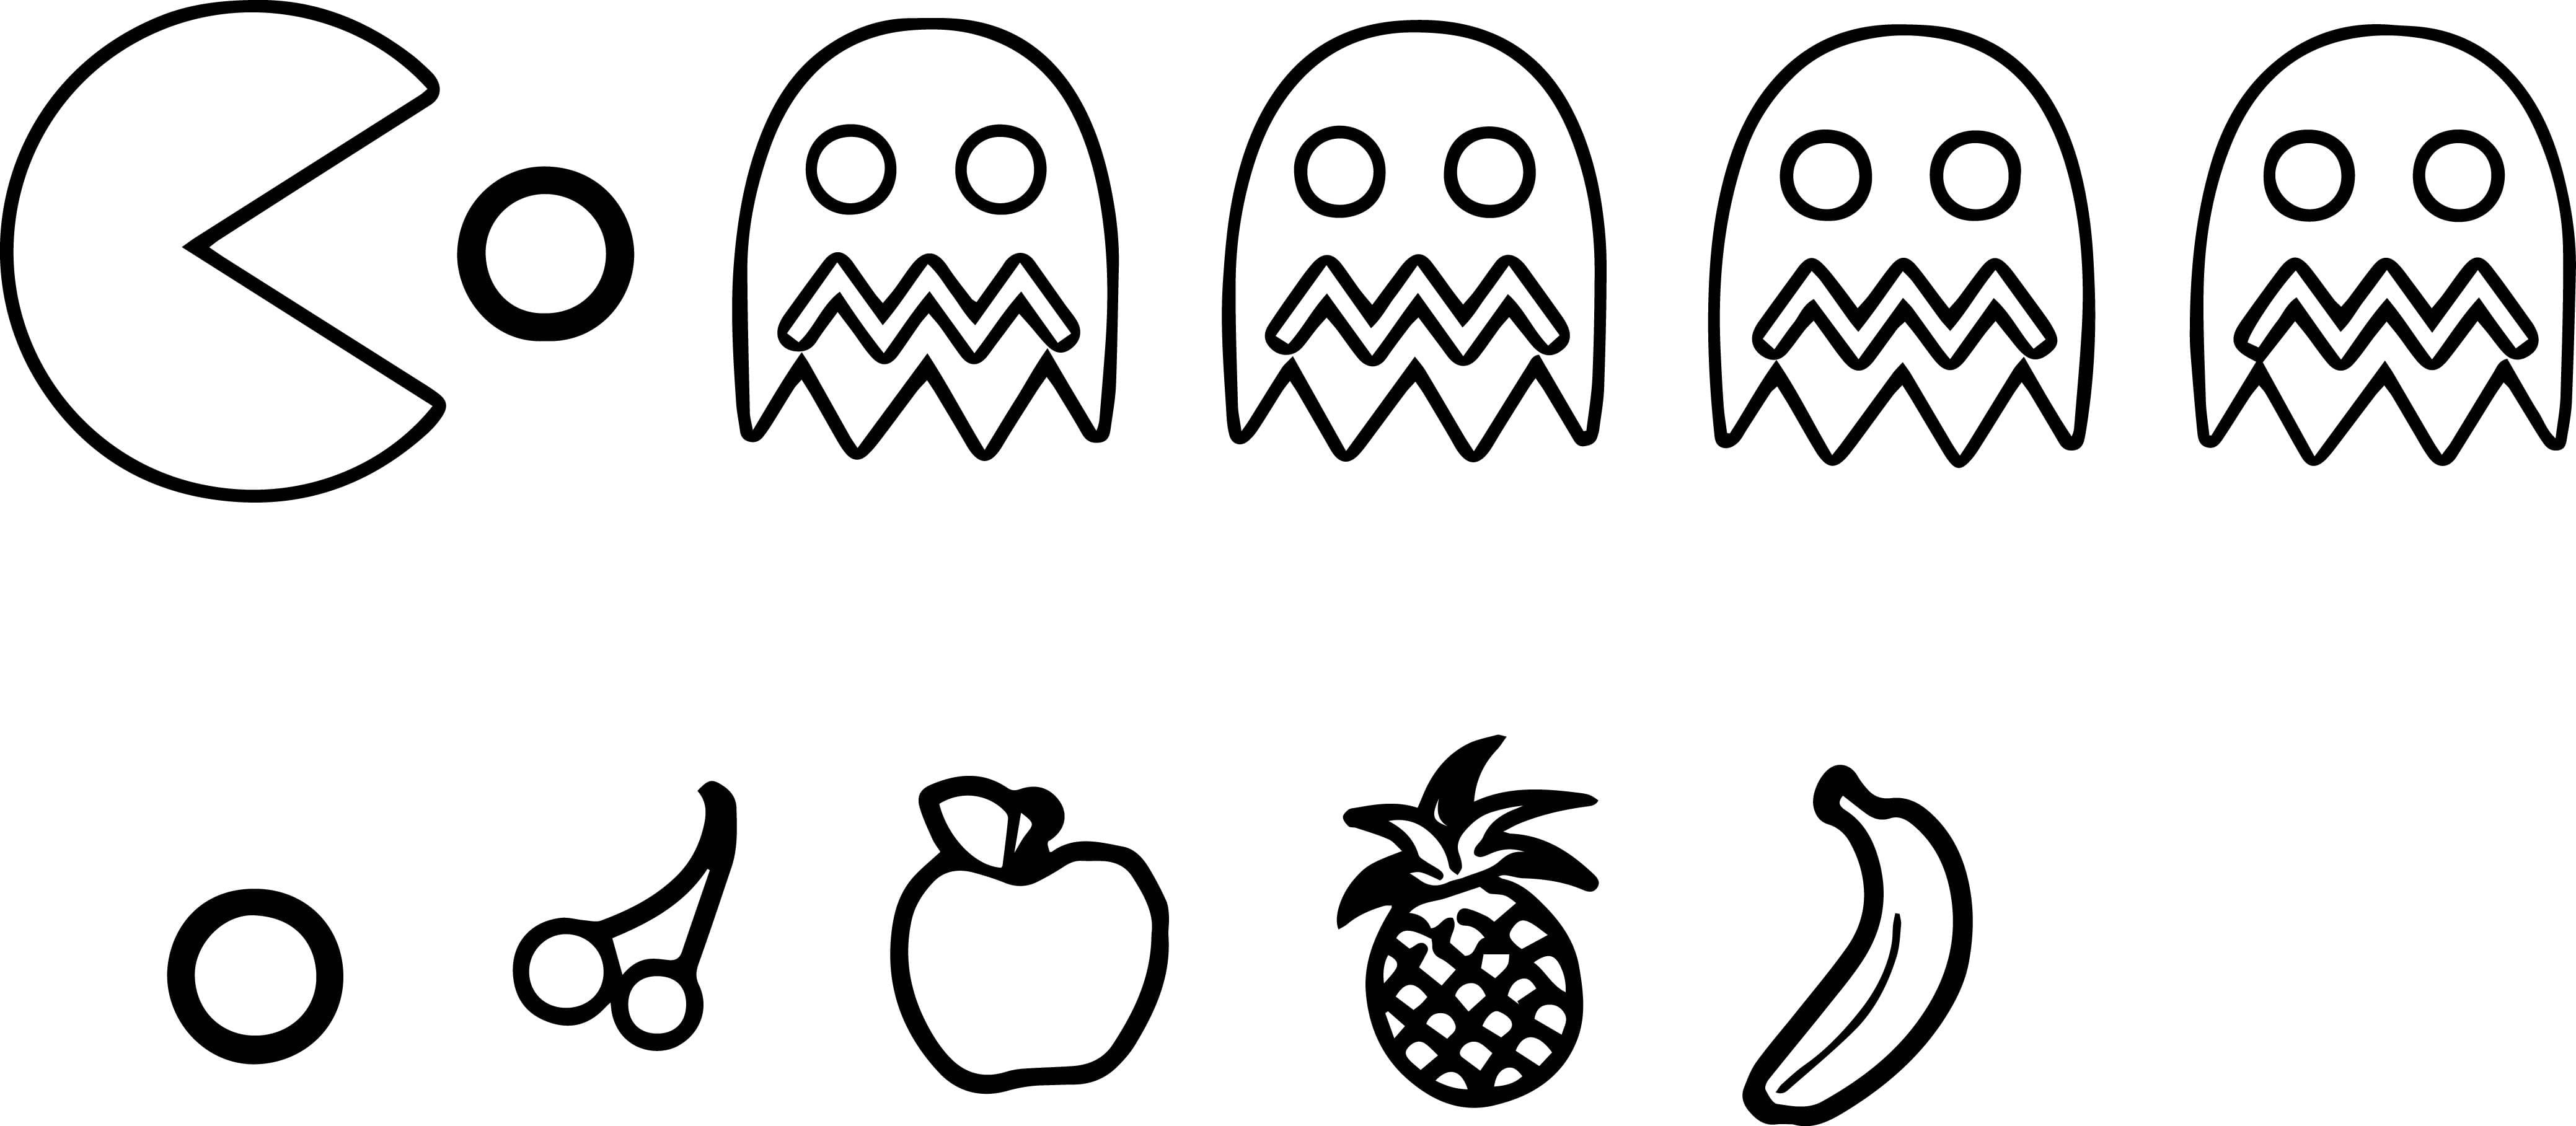 Unique Pac Man Fruit Coloring Pages Gallery Printable Sheet Best